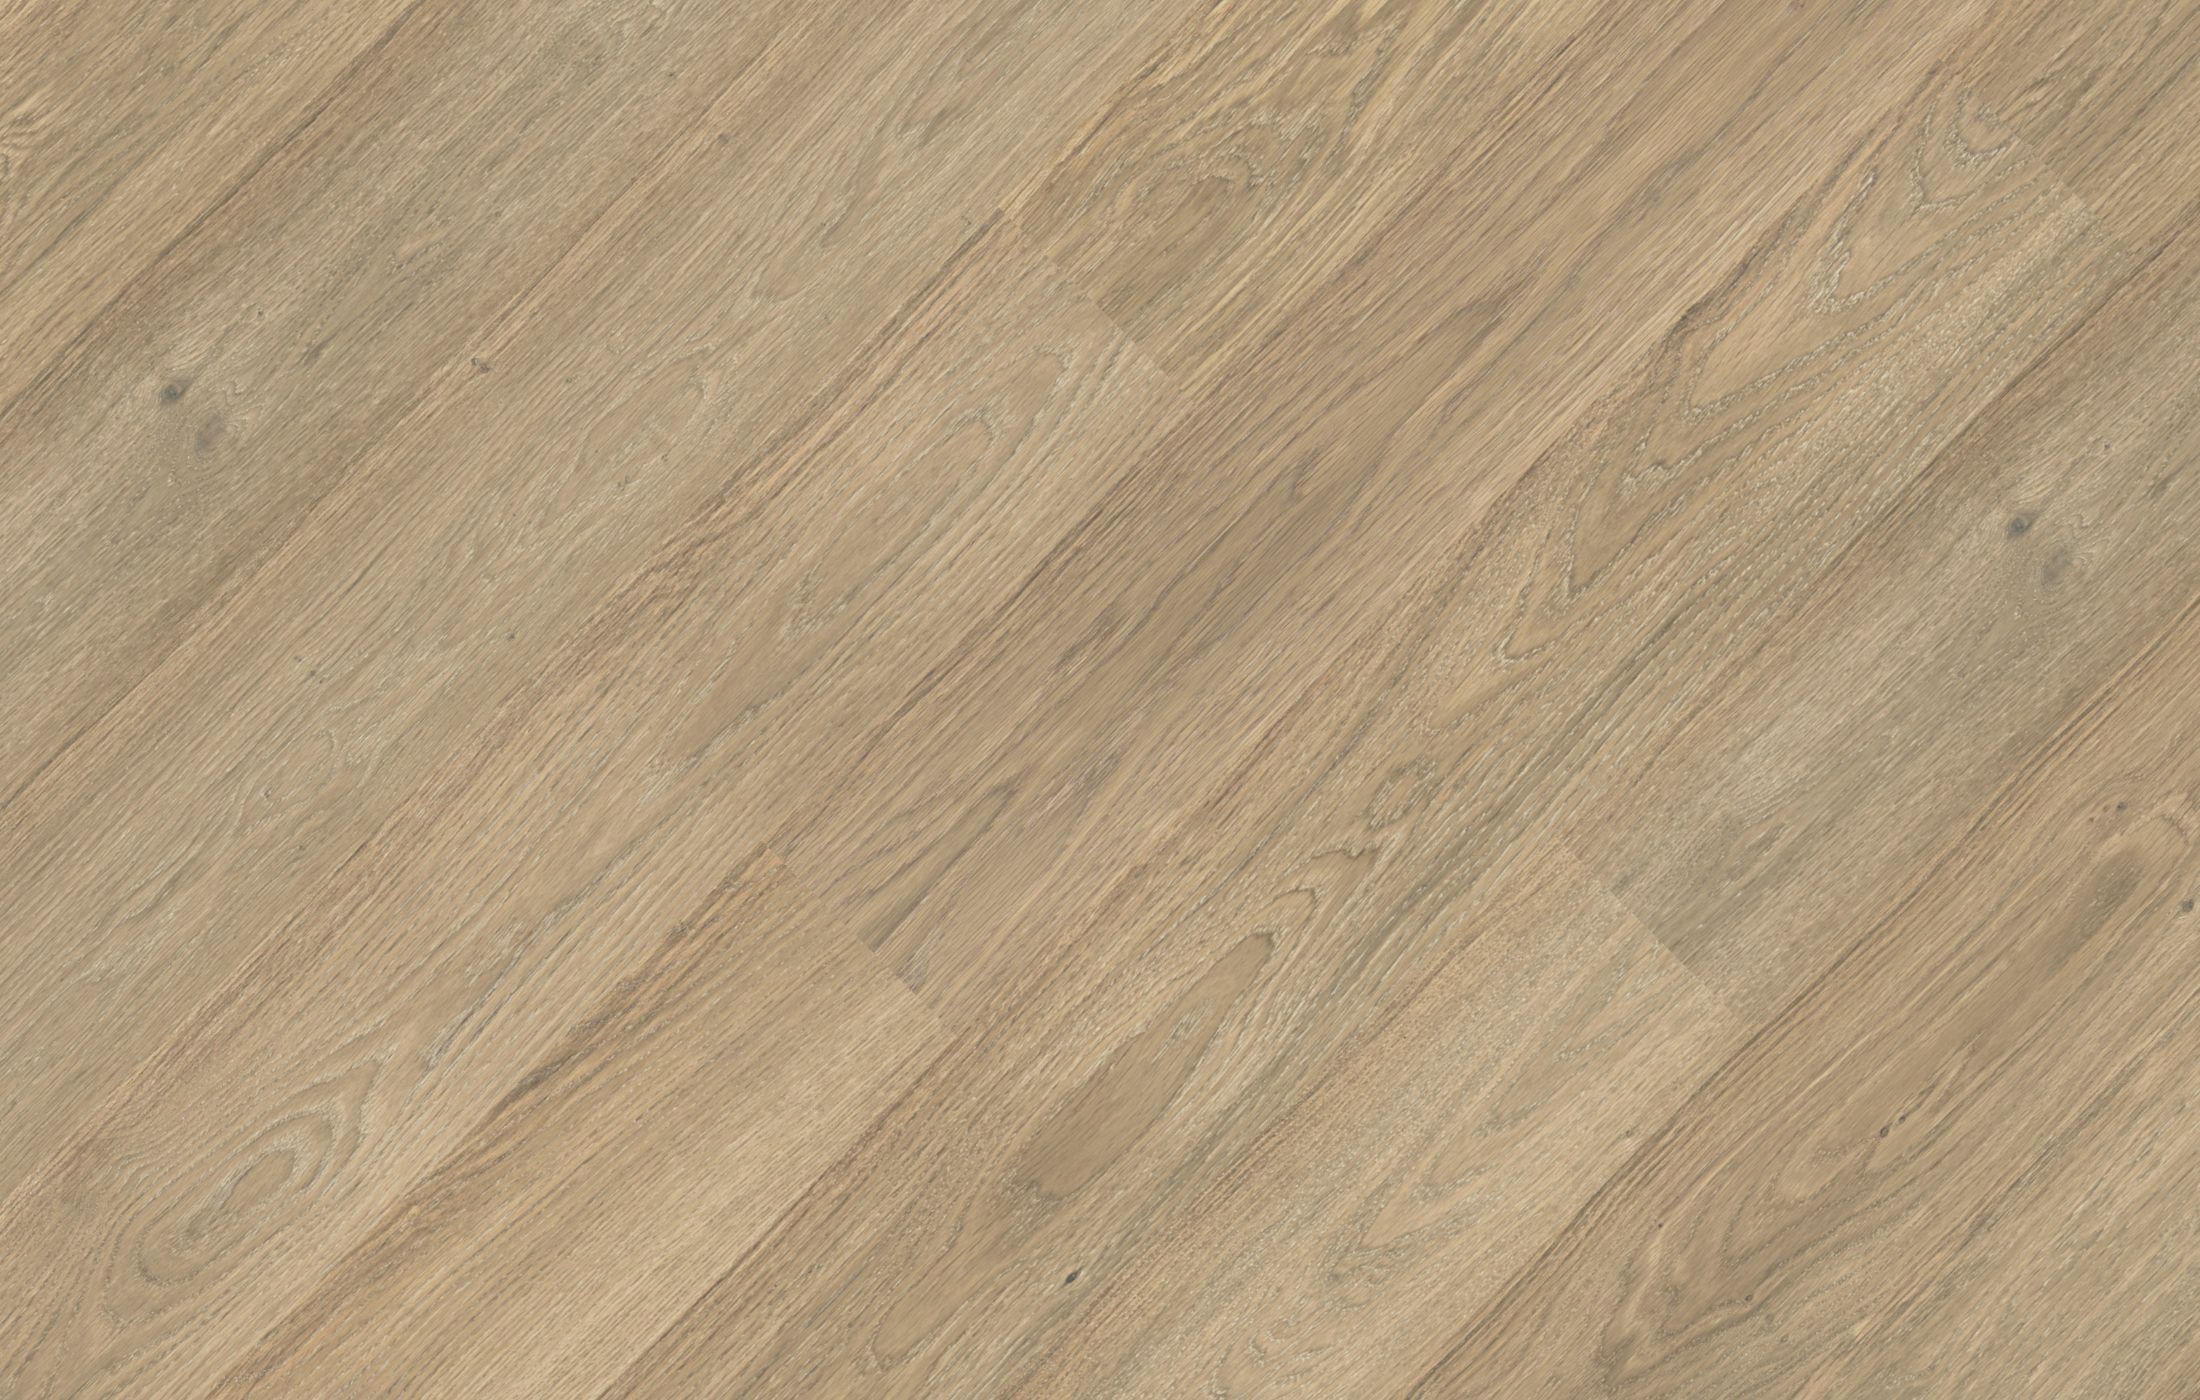 Oak Color Avorio Jawor Parkiet Manufacturer Of Wooden